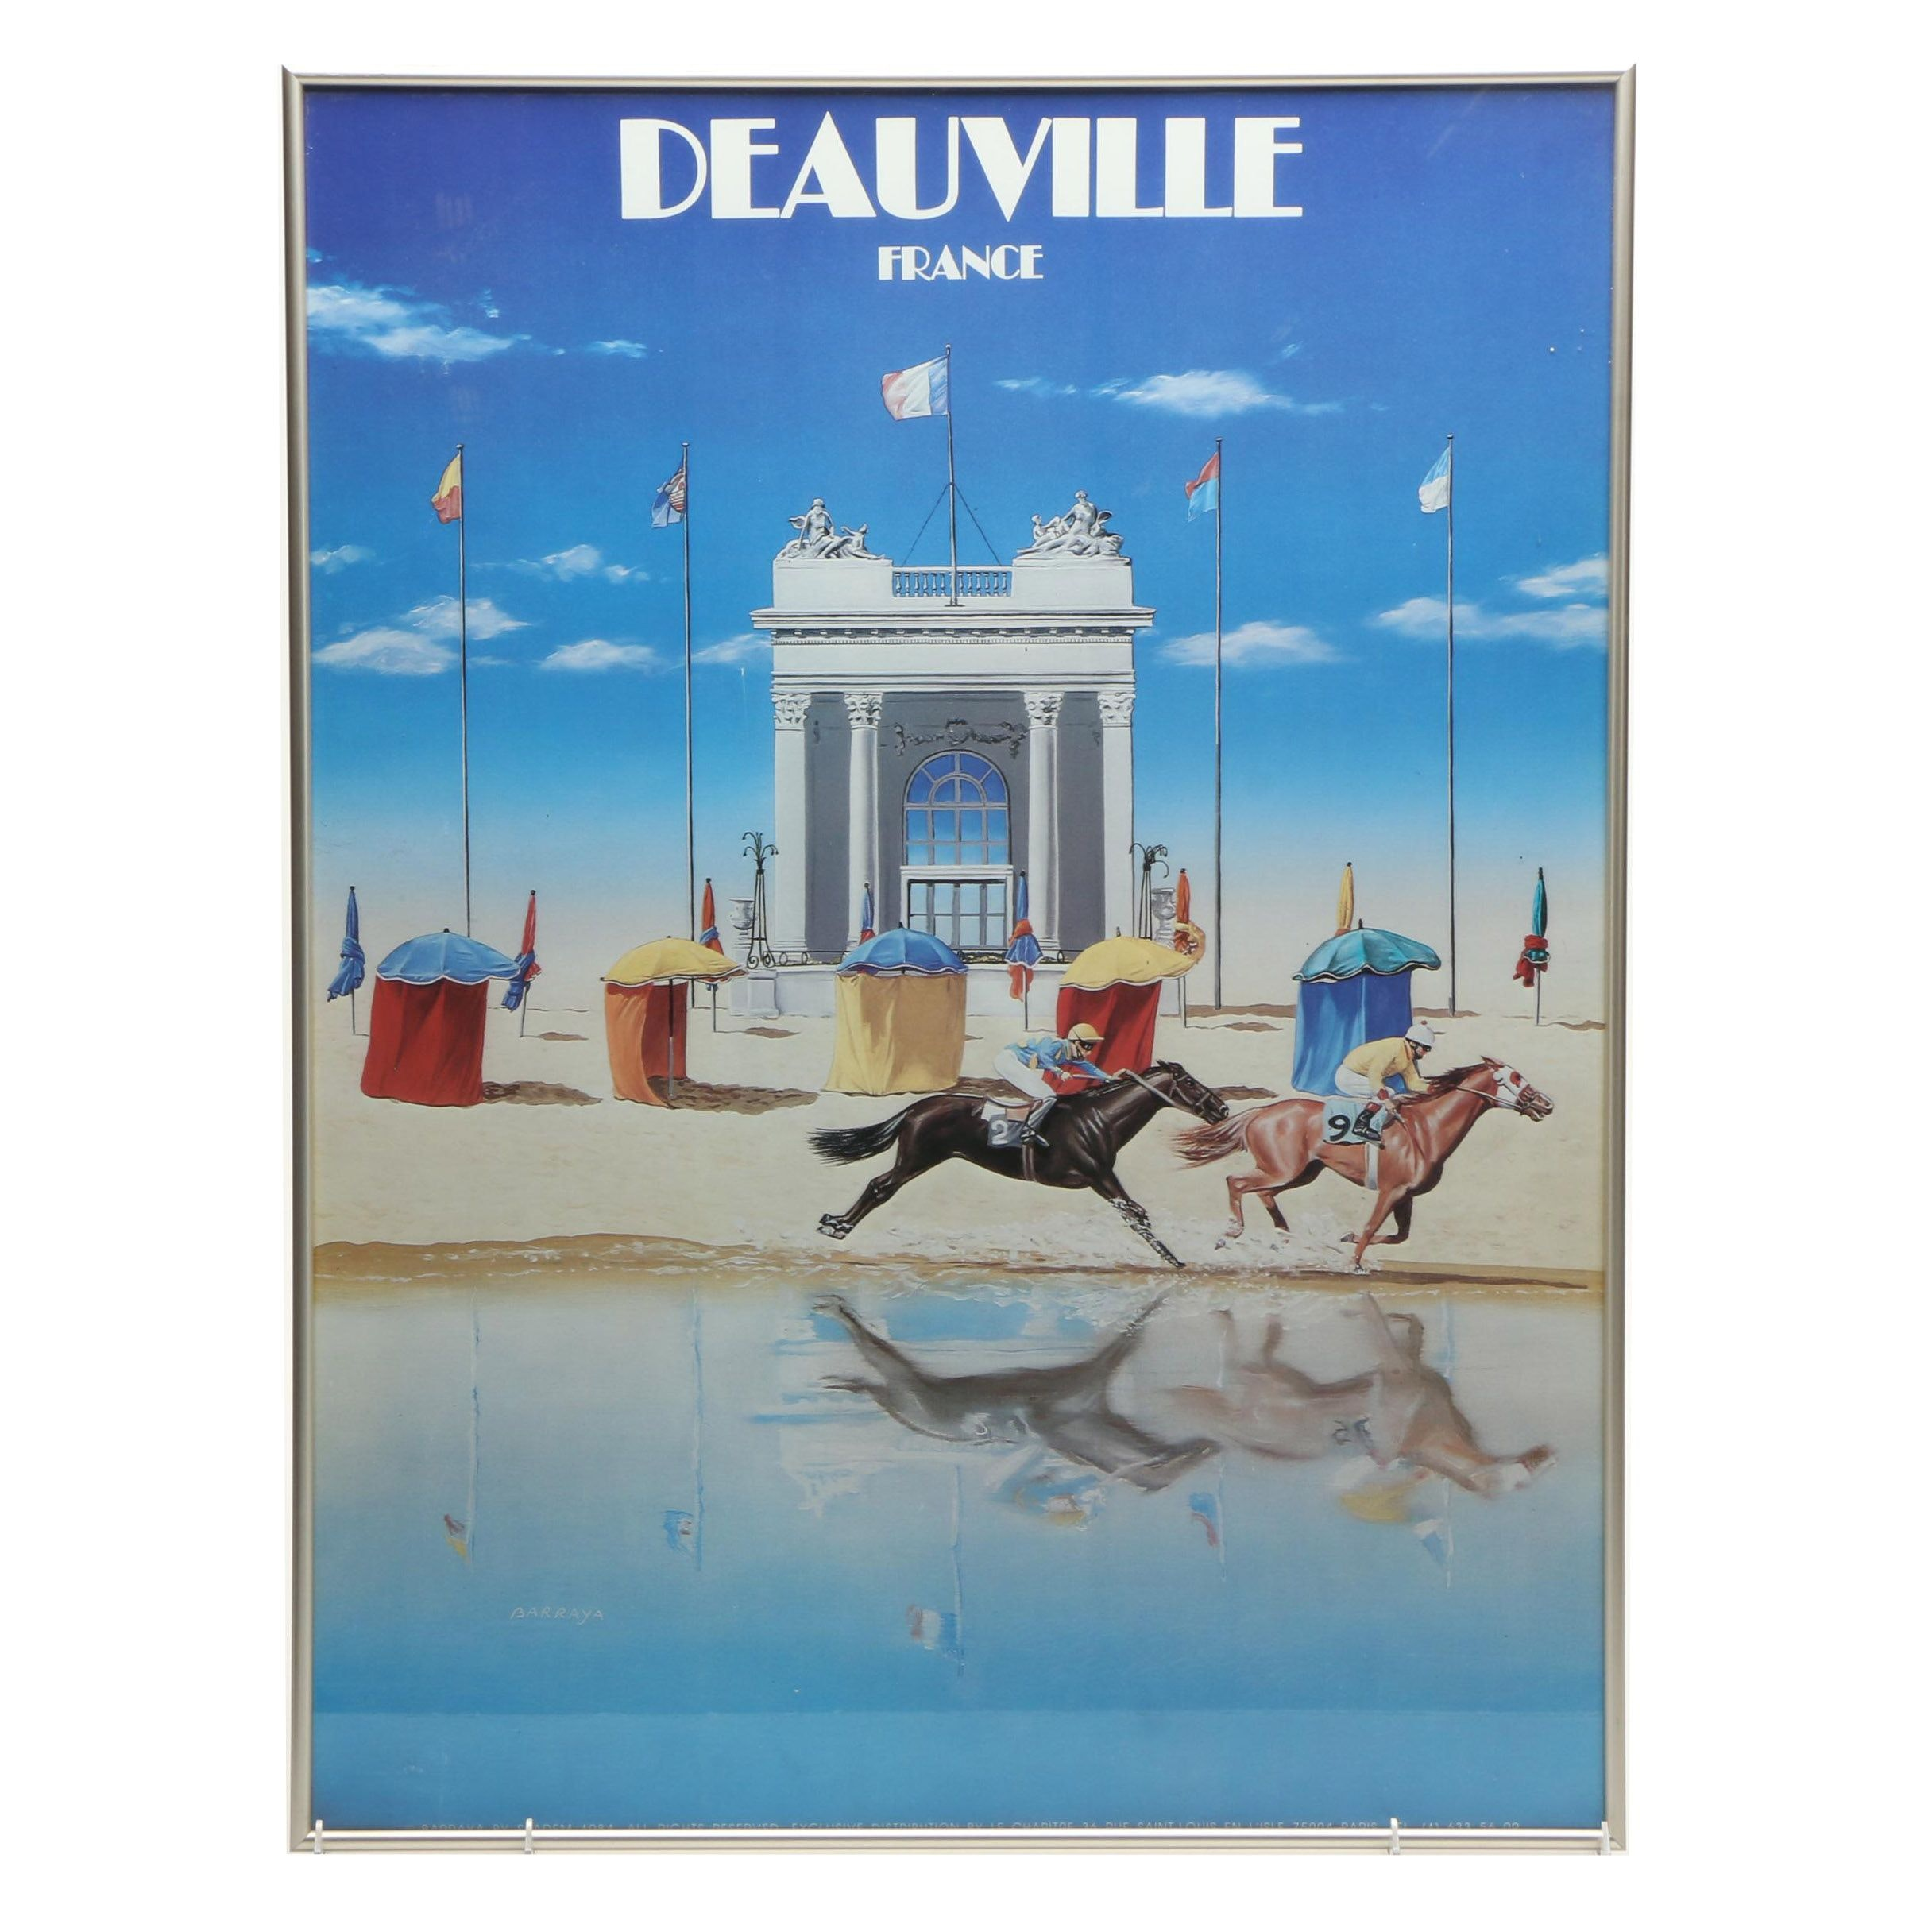 Deauville, France, Horse Racing Themed Advertising Poster